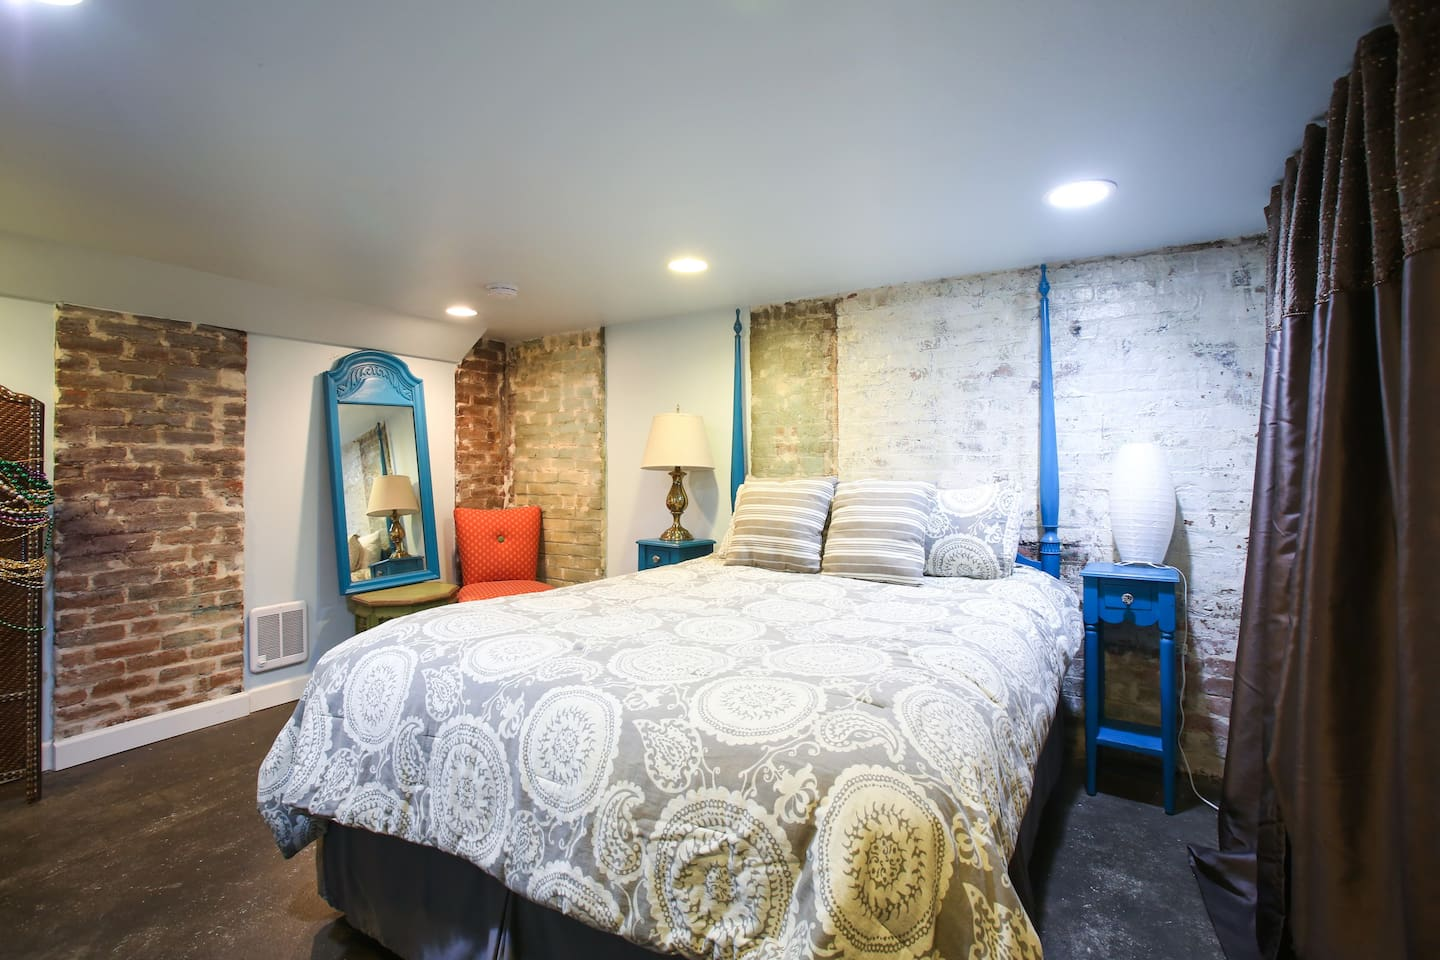 Lovely bedroom with queen bed, black out curtains, and lots of antique brick.